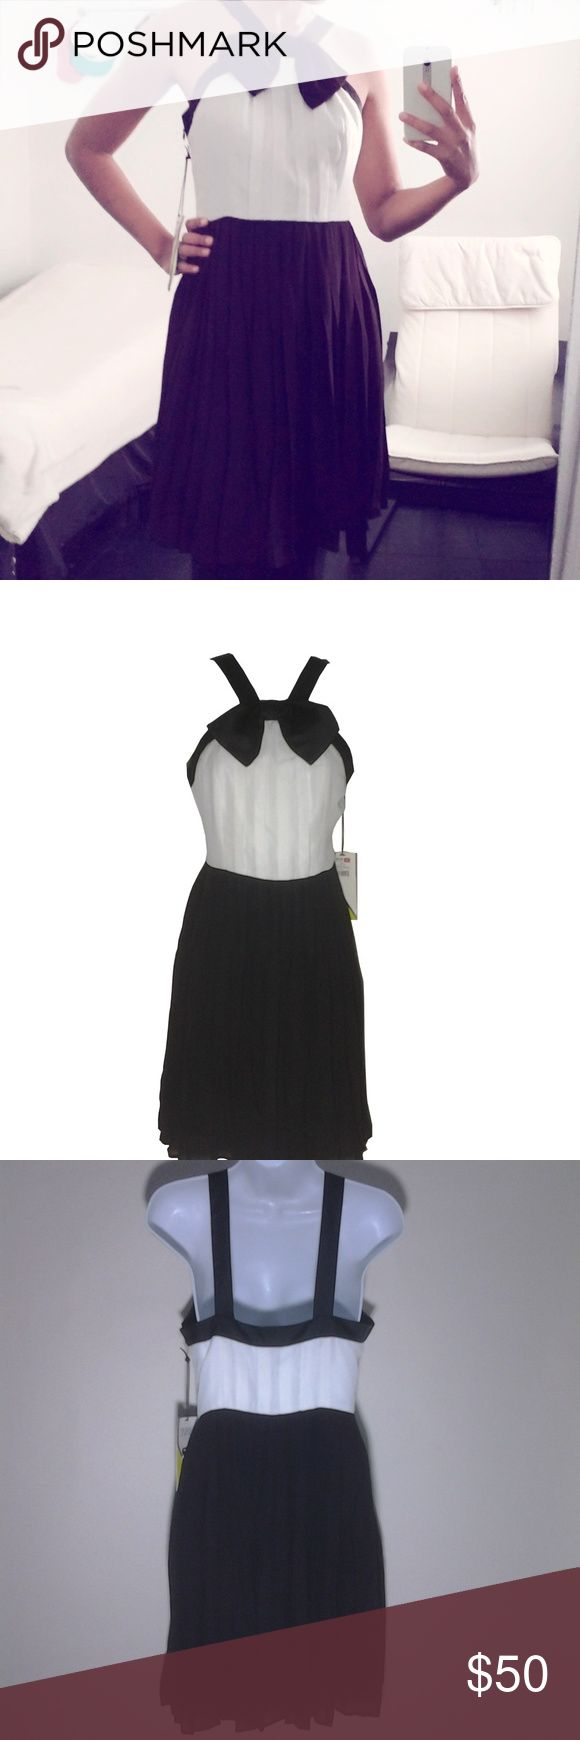 """Prabal Gurung Target Dress Black and white pleated skirt dress with pintucked bodice, satin trim and bow. Waist measures ~27"""" Bust measures ~34"""" Garment length ~35"""" 100% polyester Dry clean only. Prabal Gurung for Target Dresses"""